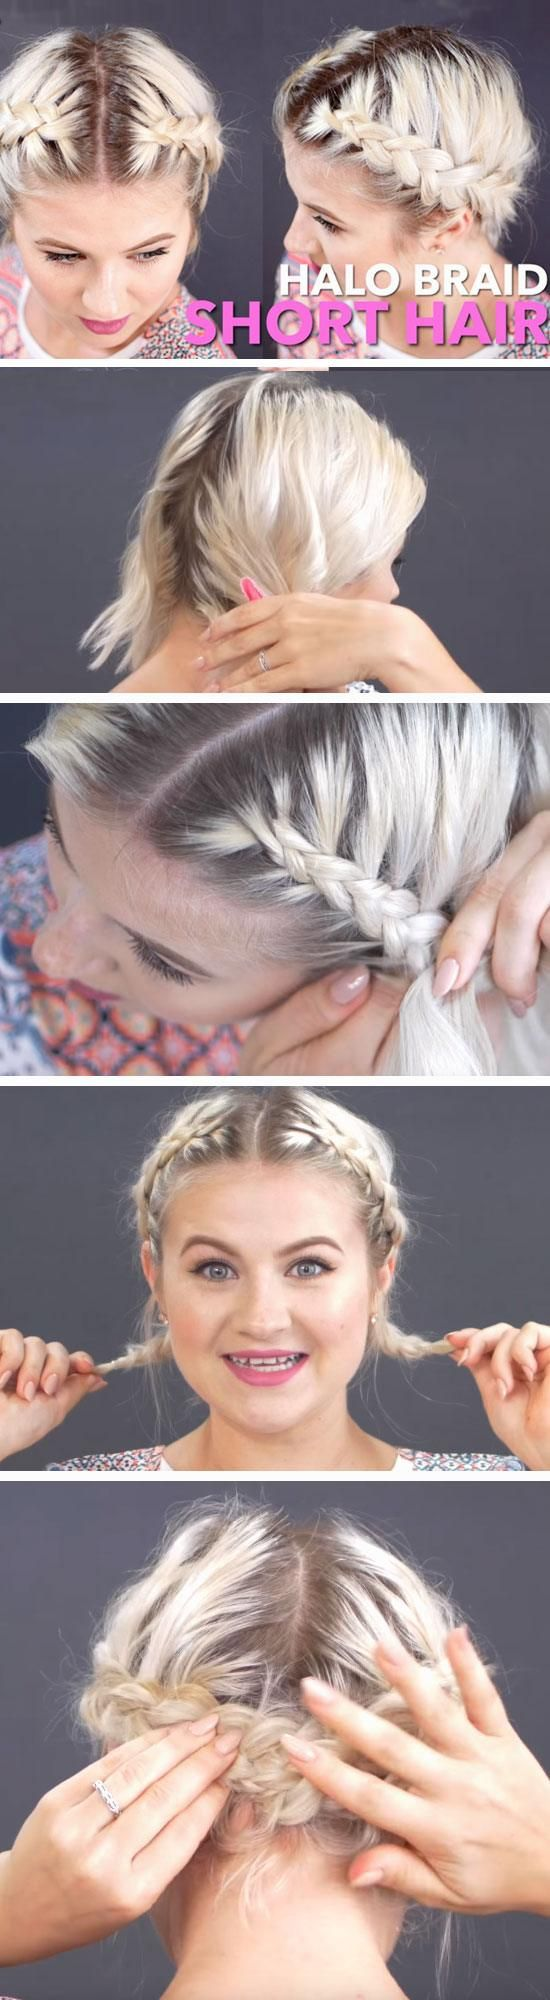 3 Genius Festival Hair Ideas to Try at Your Next Festival pictures